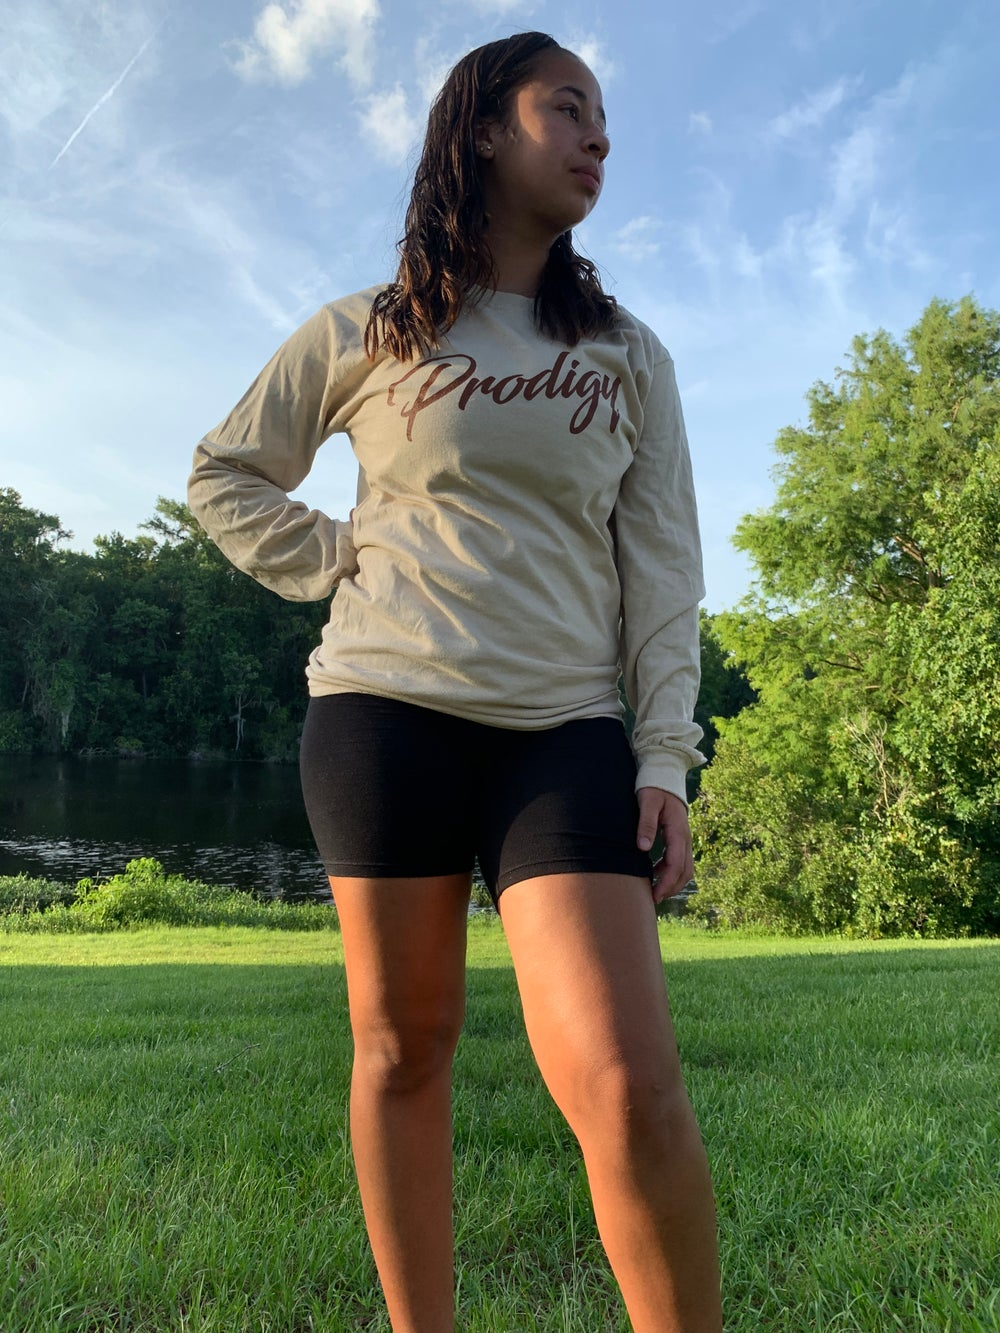 NEW BRAND PRODIGY SCRIPT TAN L/S TEE WITH SIENNA BROWN INK